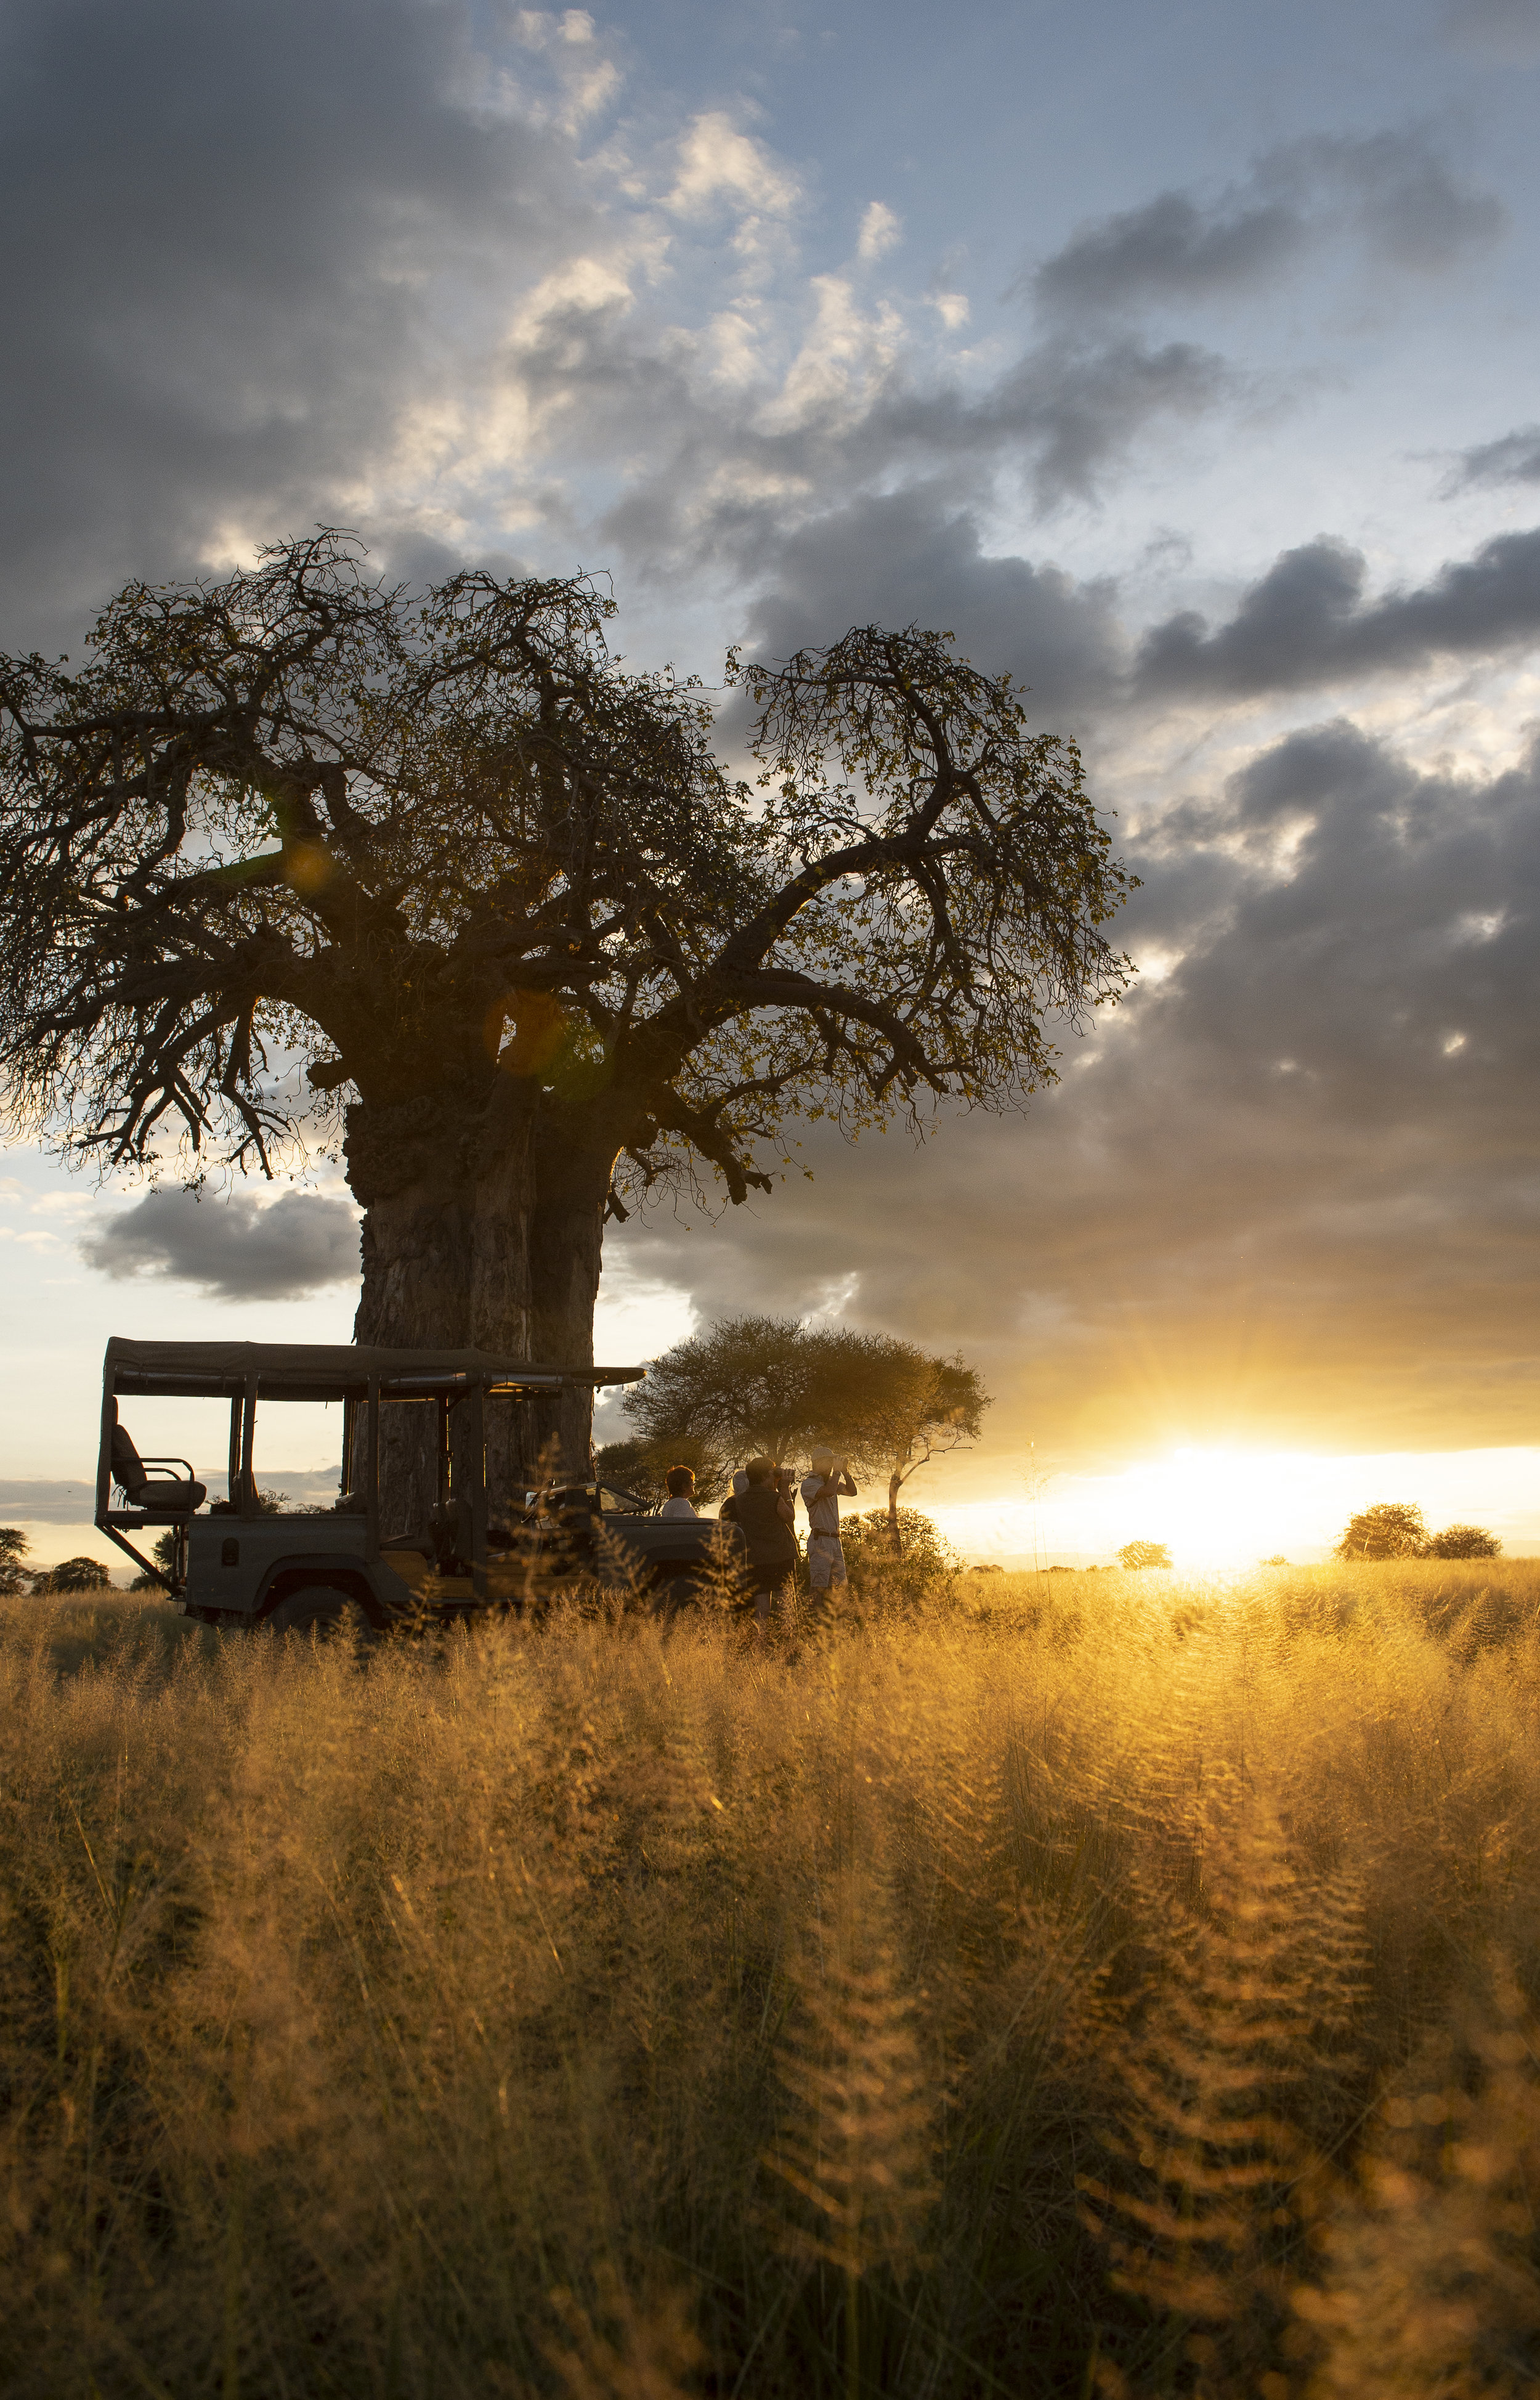 Join us in the beautiful wild of Tanzania… - One week of physical, mental and emotional rejuvenation at Tarangire Safari Lodge, located within Tarangire National Park, in Tanzania!